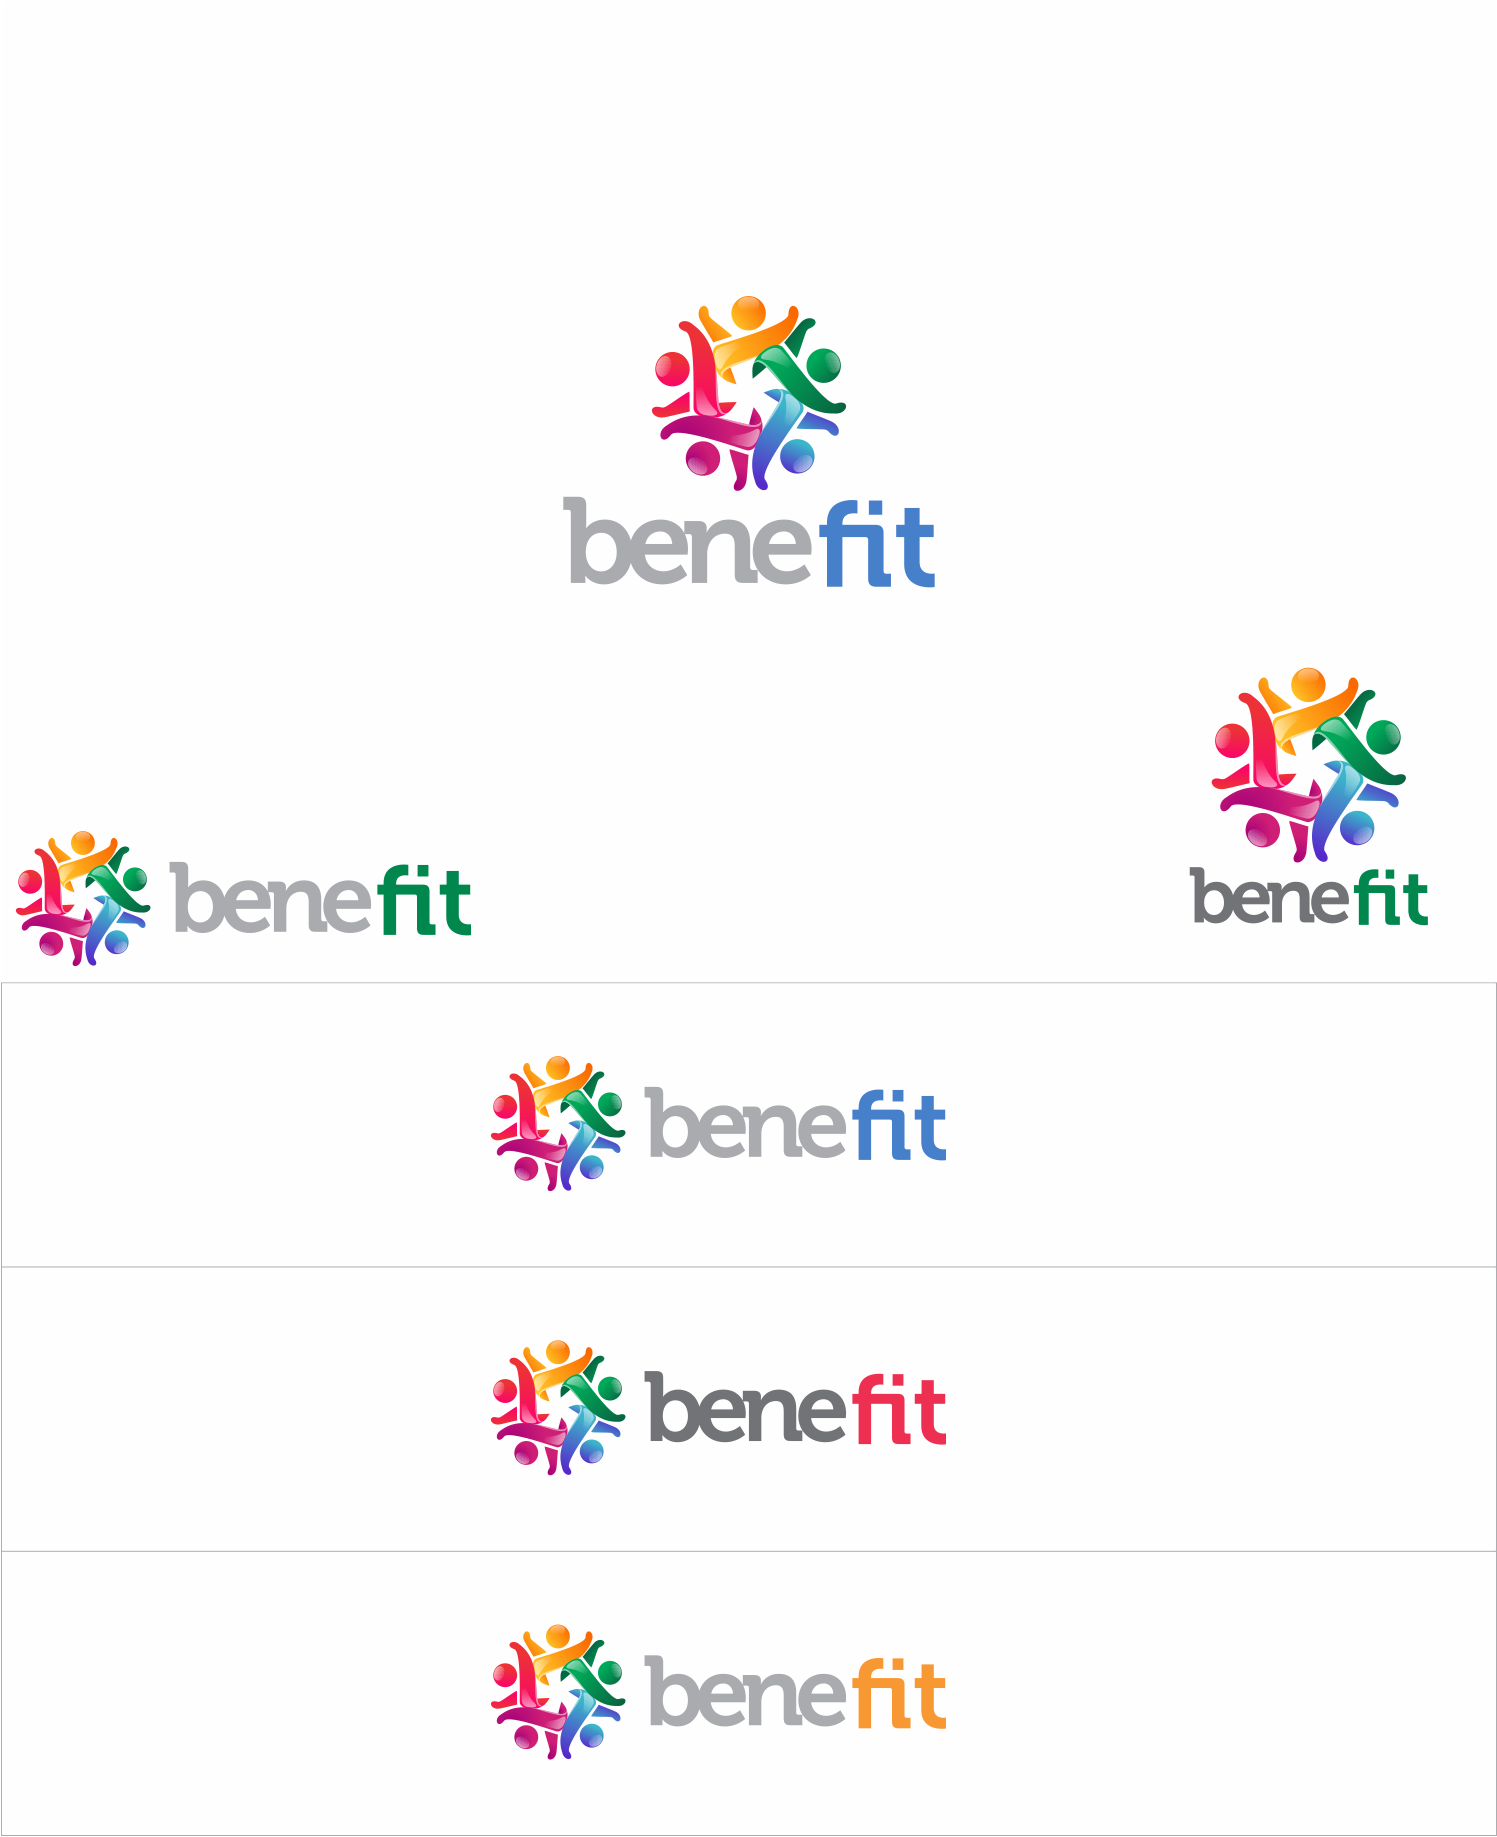 Create a clean, modern and captivating logo for an online wellness benefit program for businesses